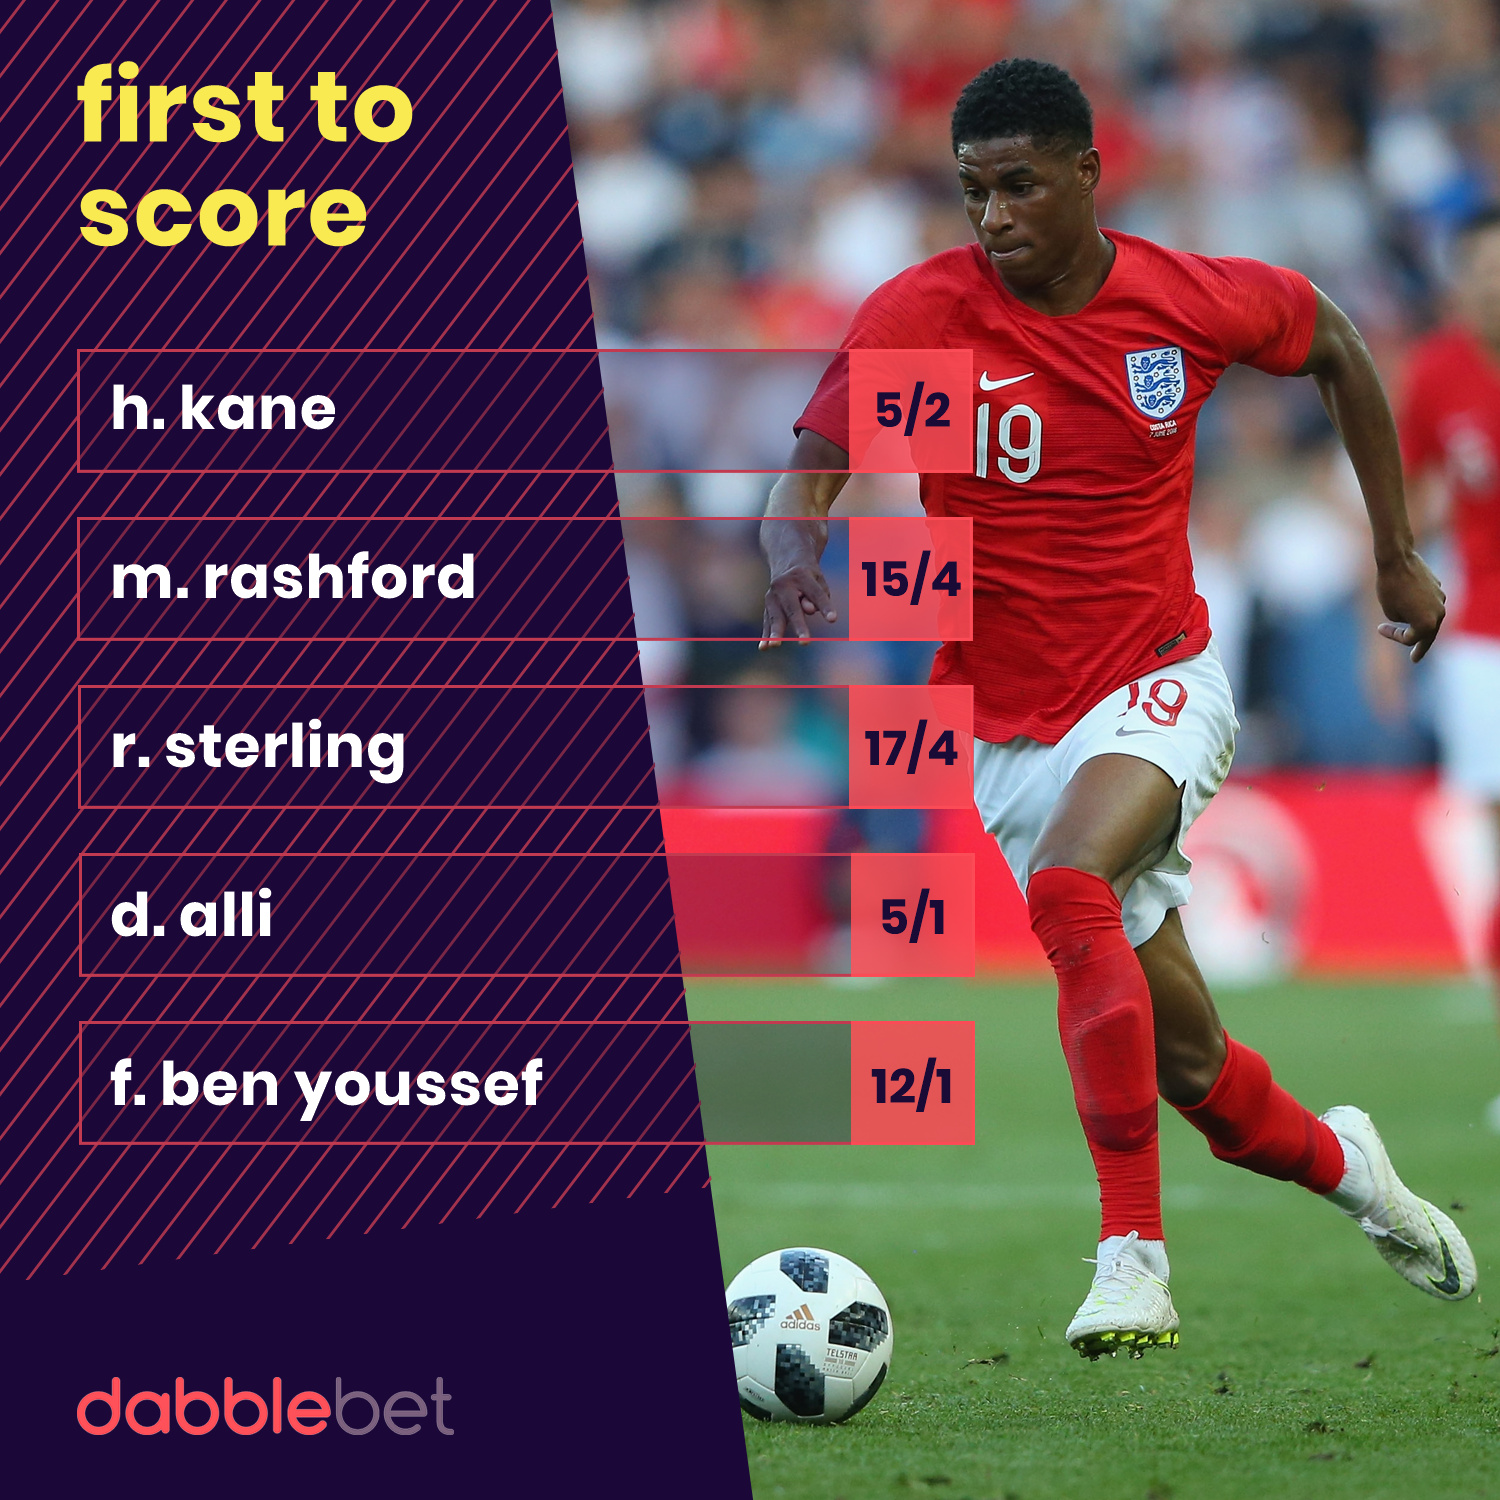 Tunisia England goalscorers graphic